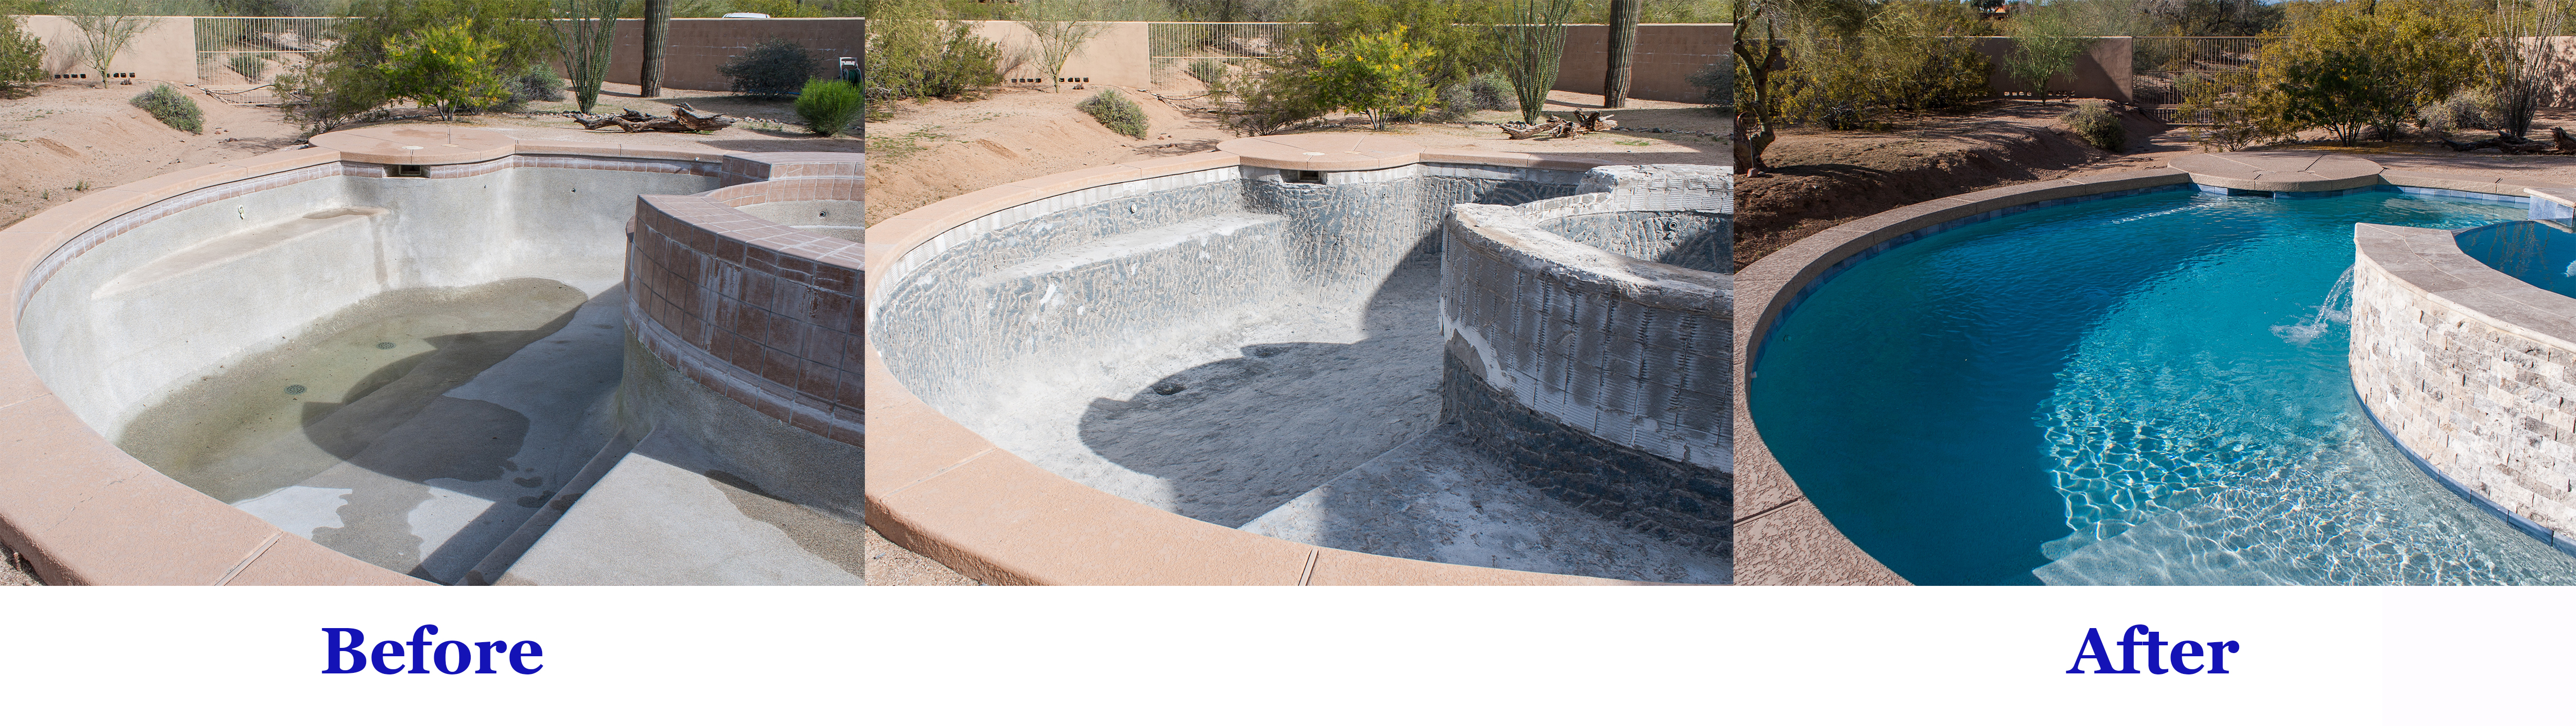 pebble-finnish-resurfacing-remodeling-scottsdale-az-3-c